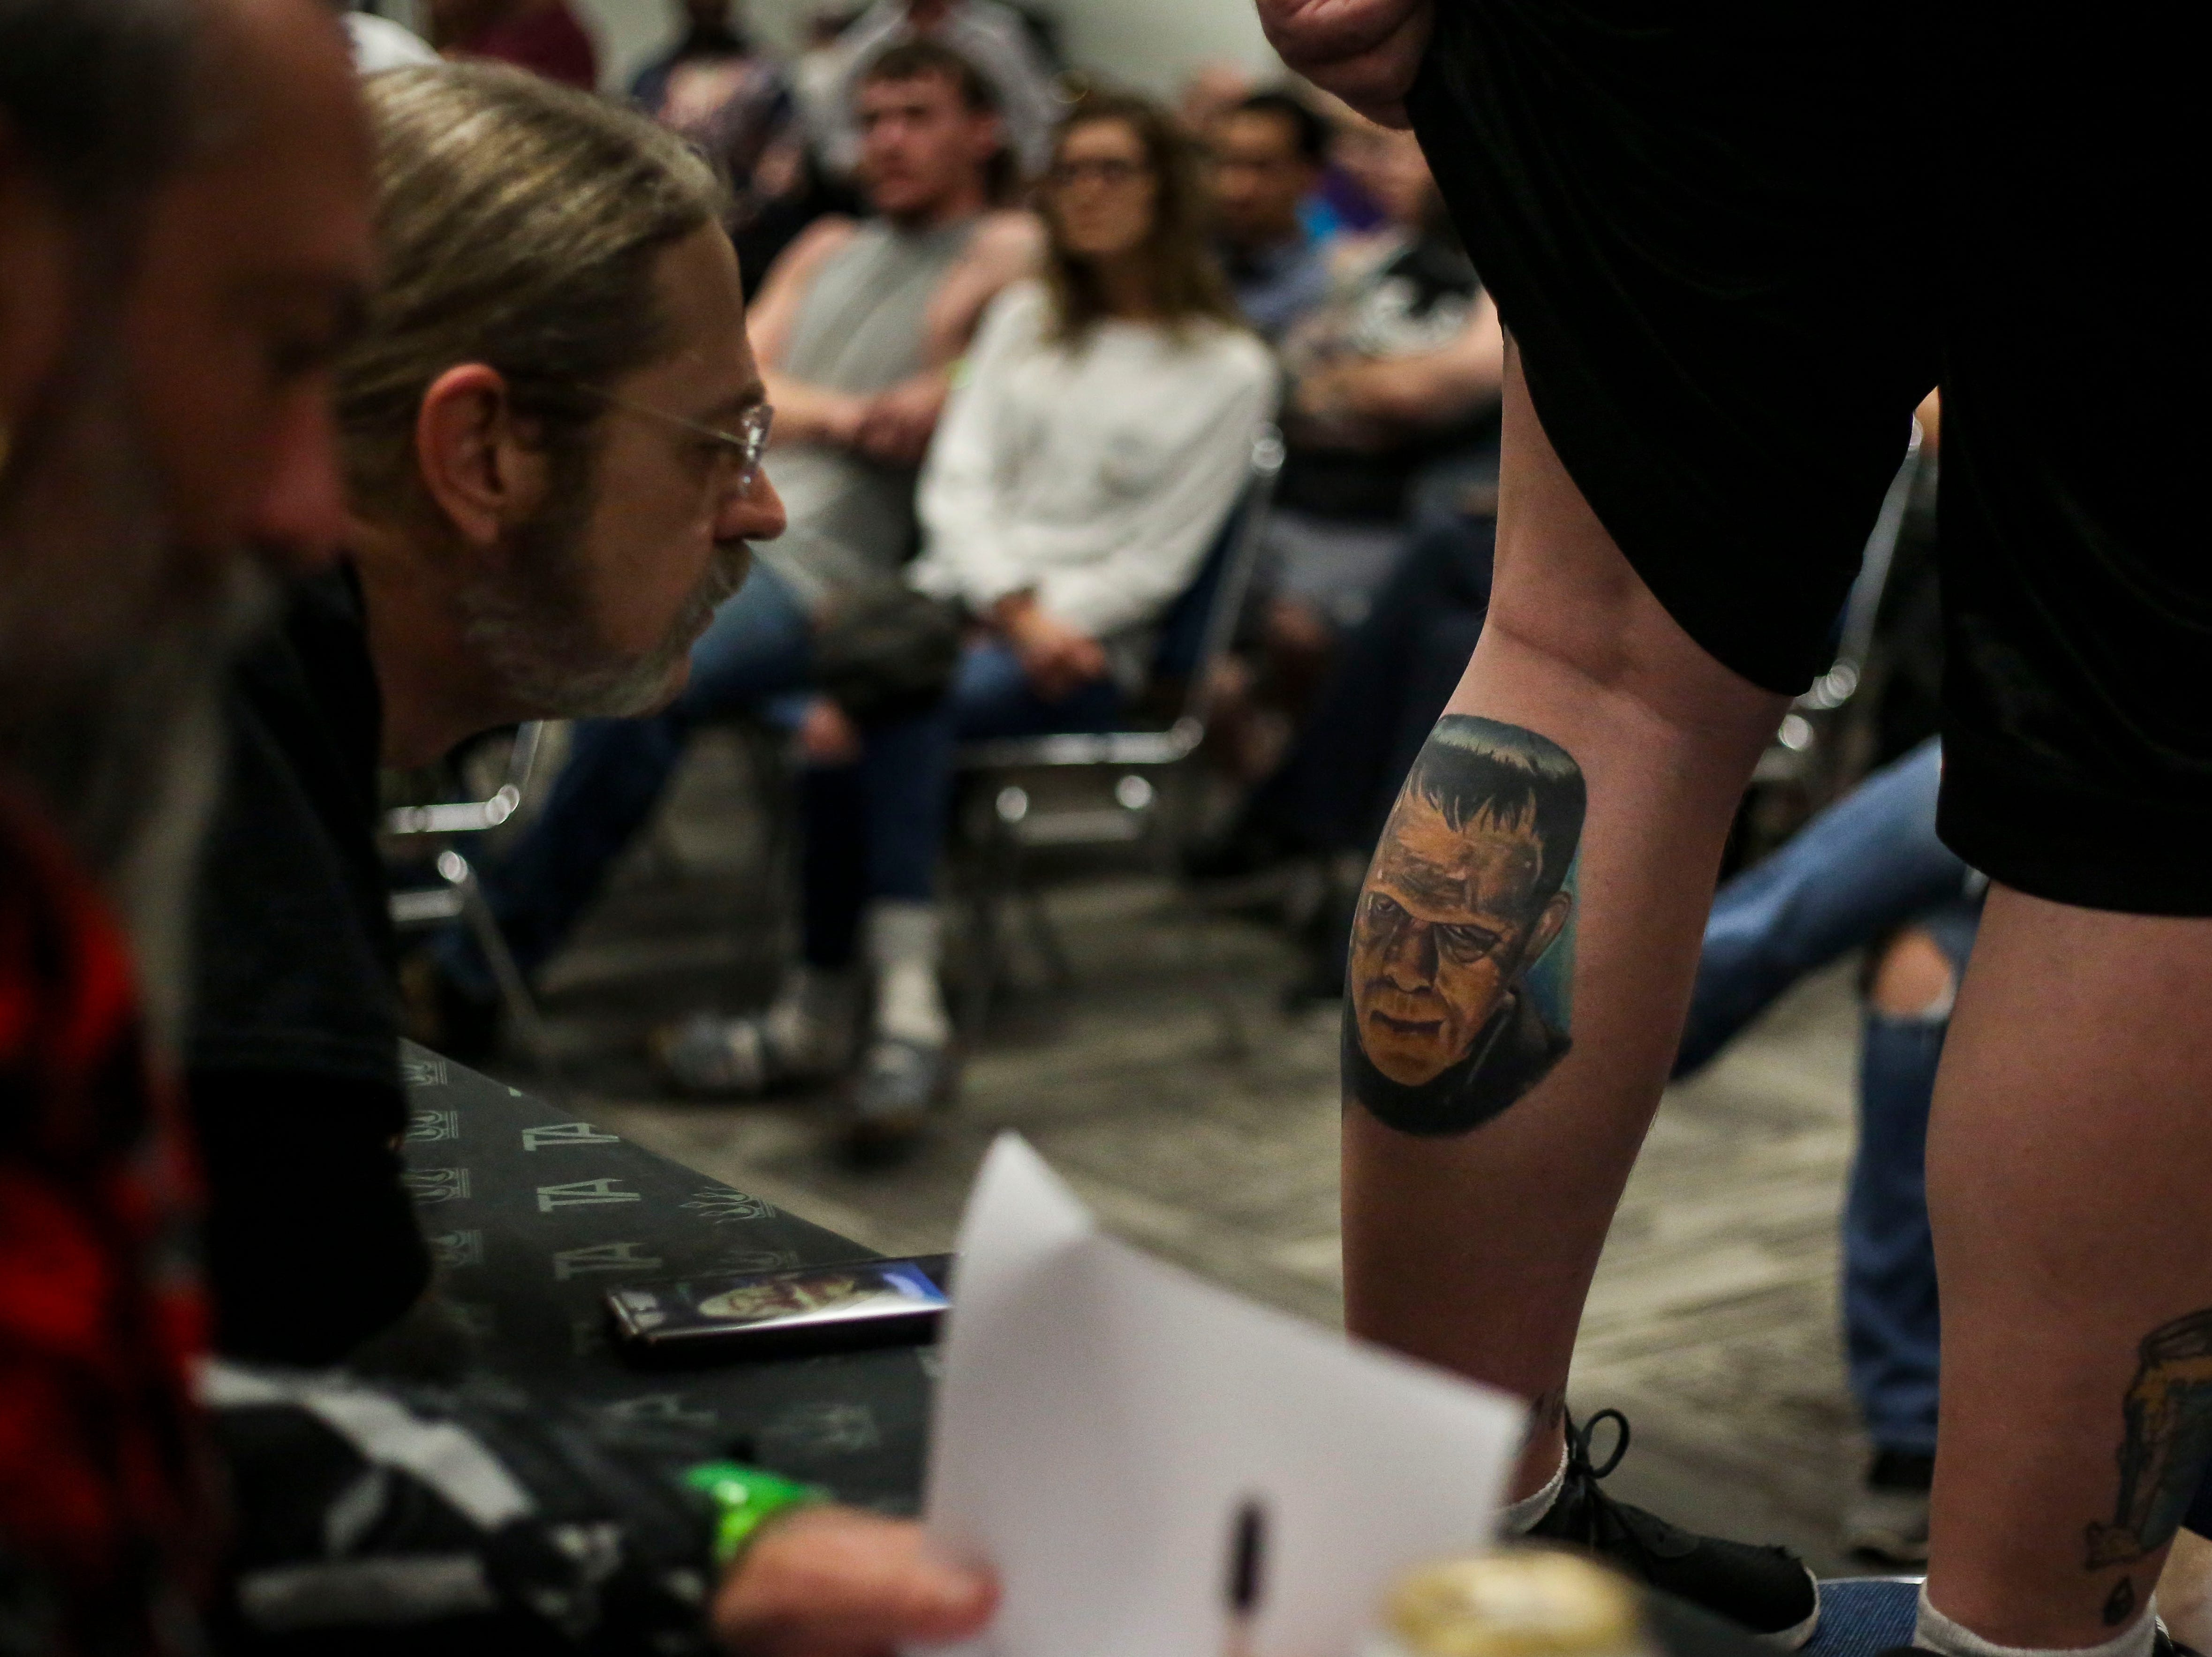 Troy Timpel, Villain Arts, left, judges Chuck Wilcox's Frankenstein tattoo during the tattoo contest at the 8th Annual Louisville Tattoo Arts Convention put on by Villain Arts at the Kentucky Expo Center in Louisville, Ky. on Saturday, April 13, 2019.